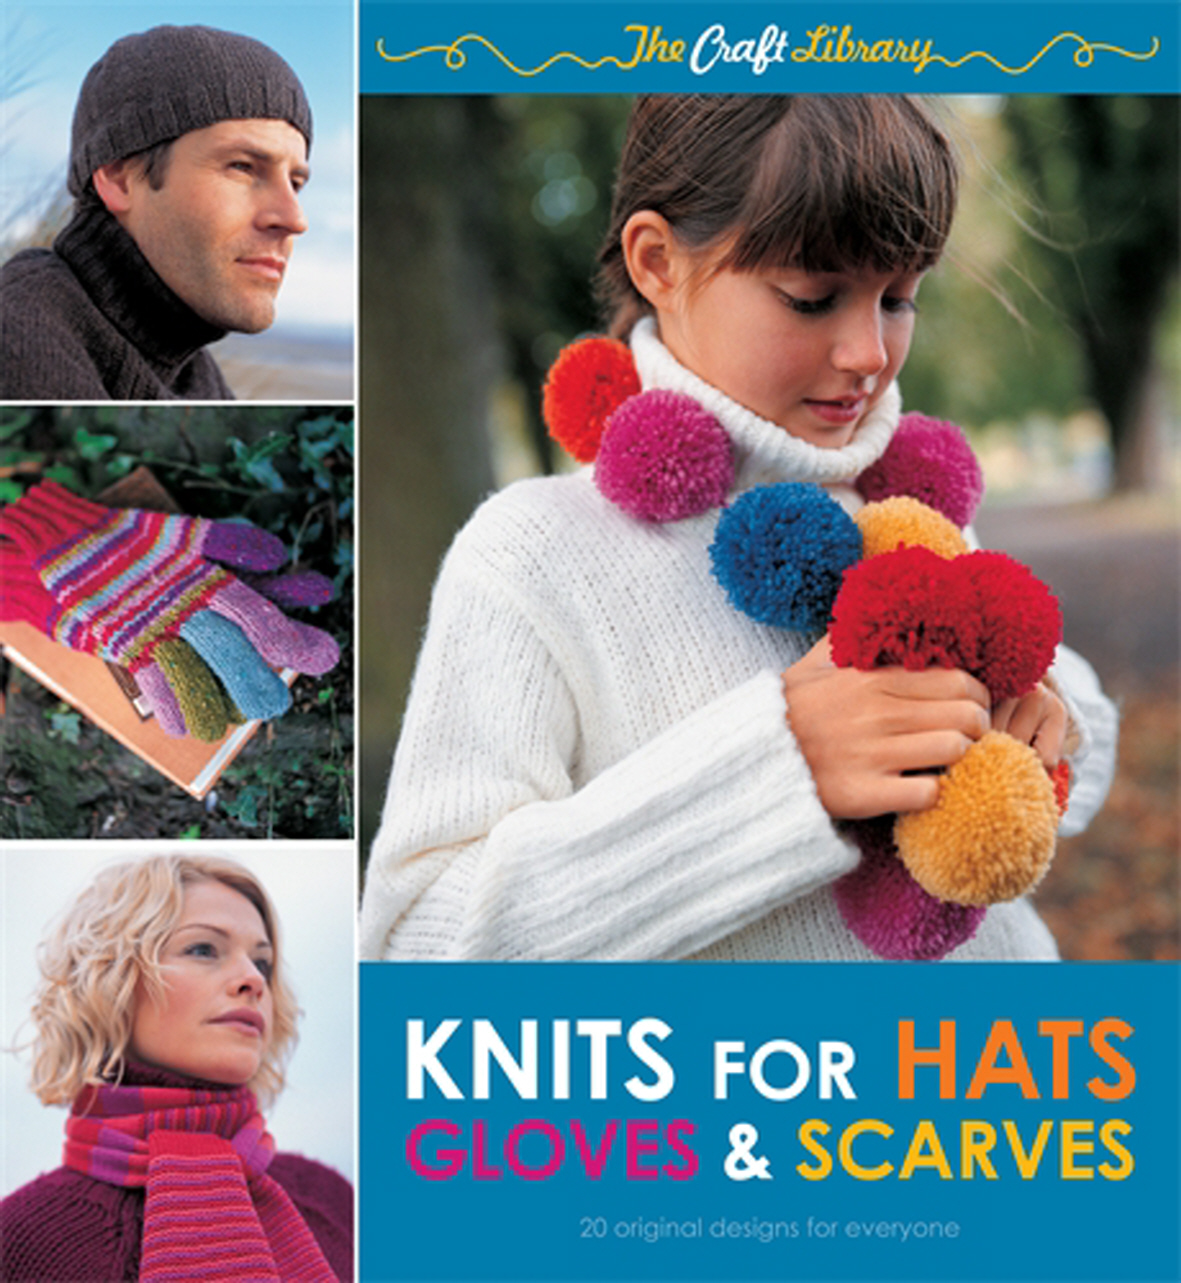 The Craft Library Knits For Hats Gloves Scarves By Louisa